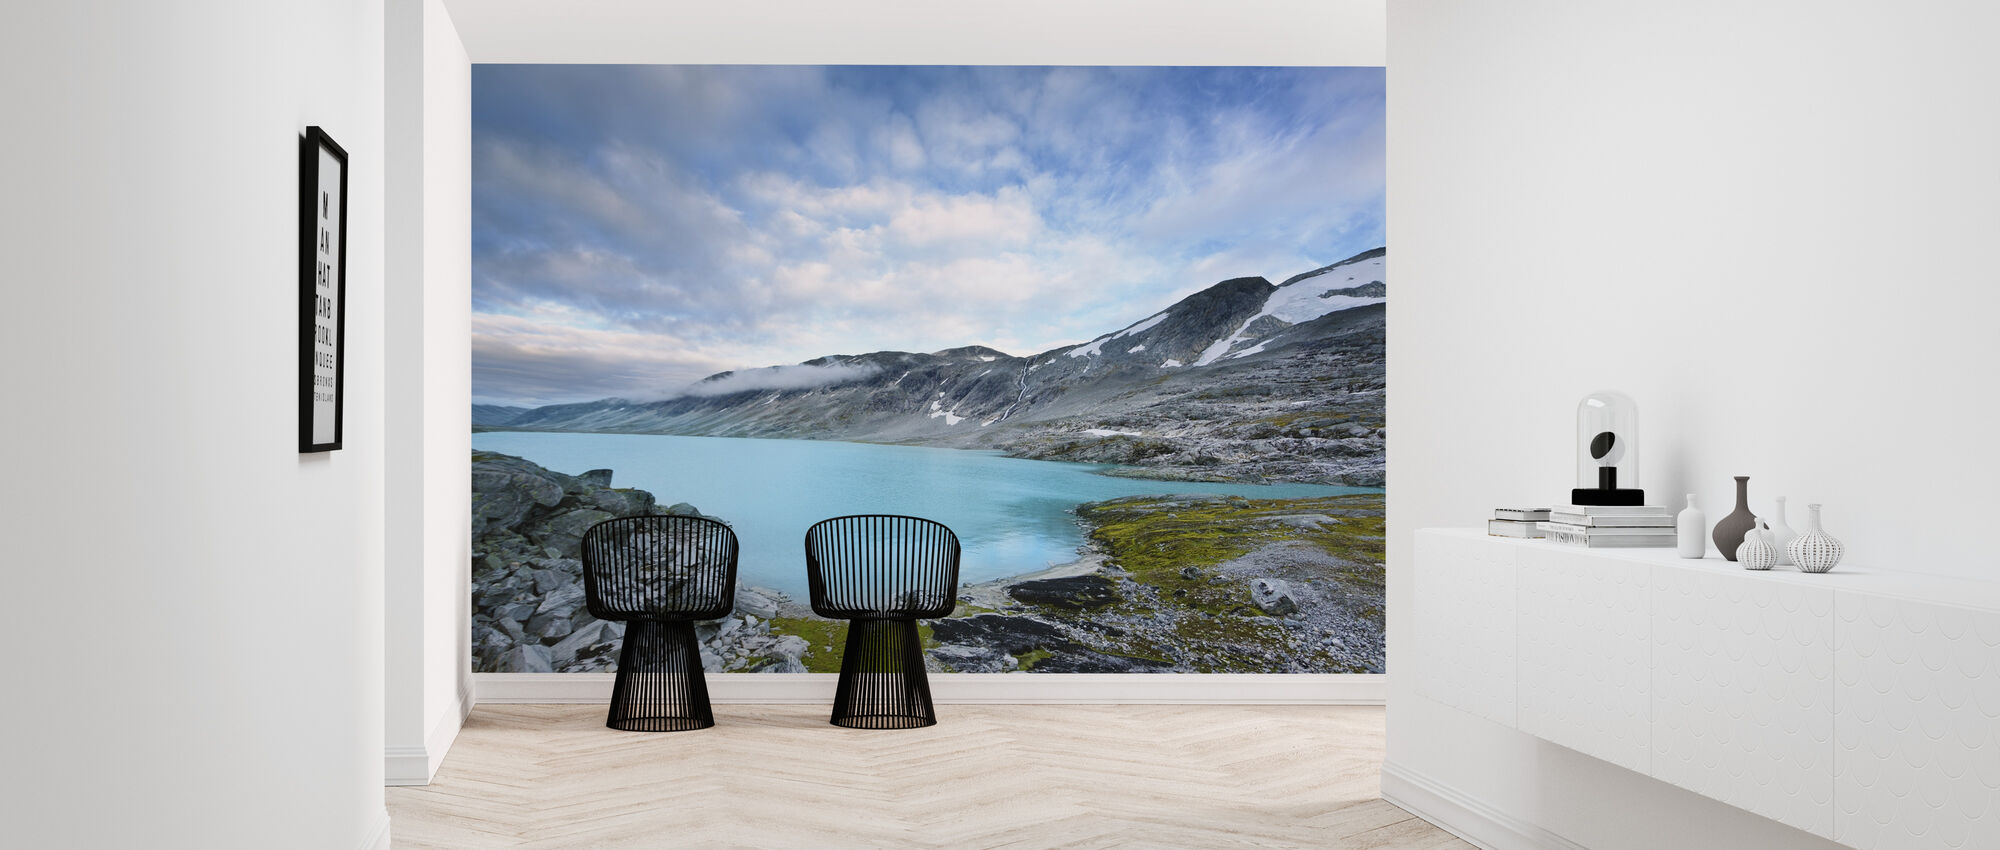 Old Strynefjell, Norway - Wallpaper - Hallway